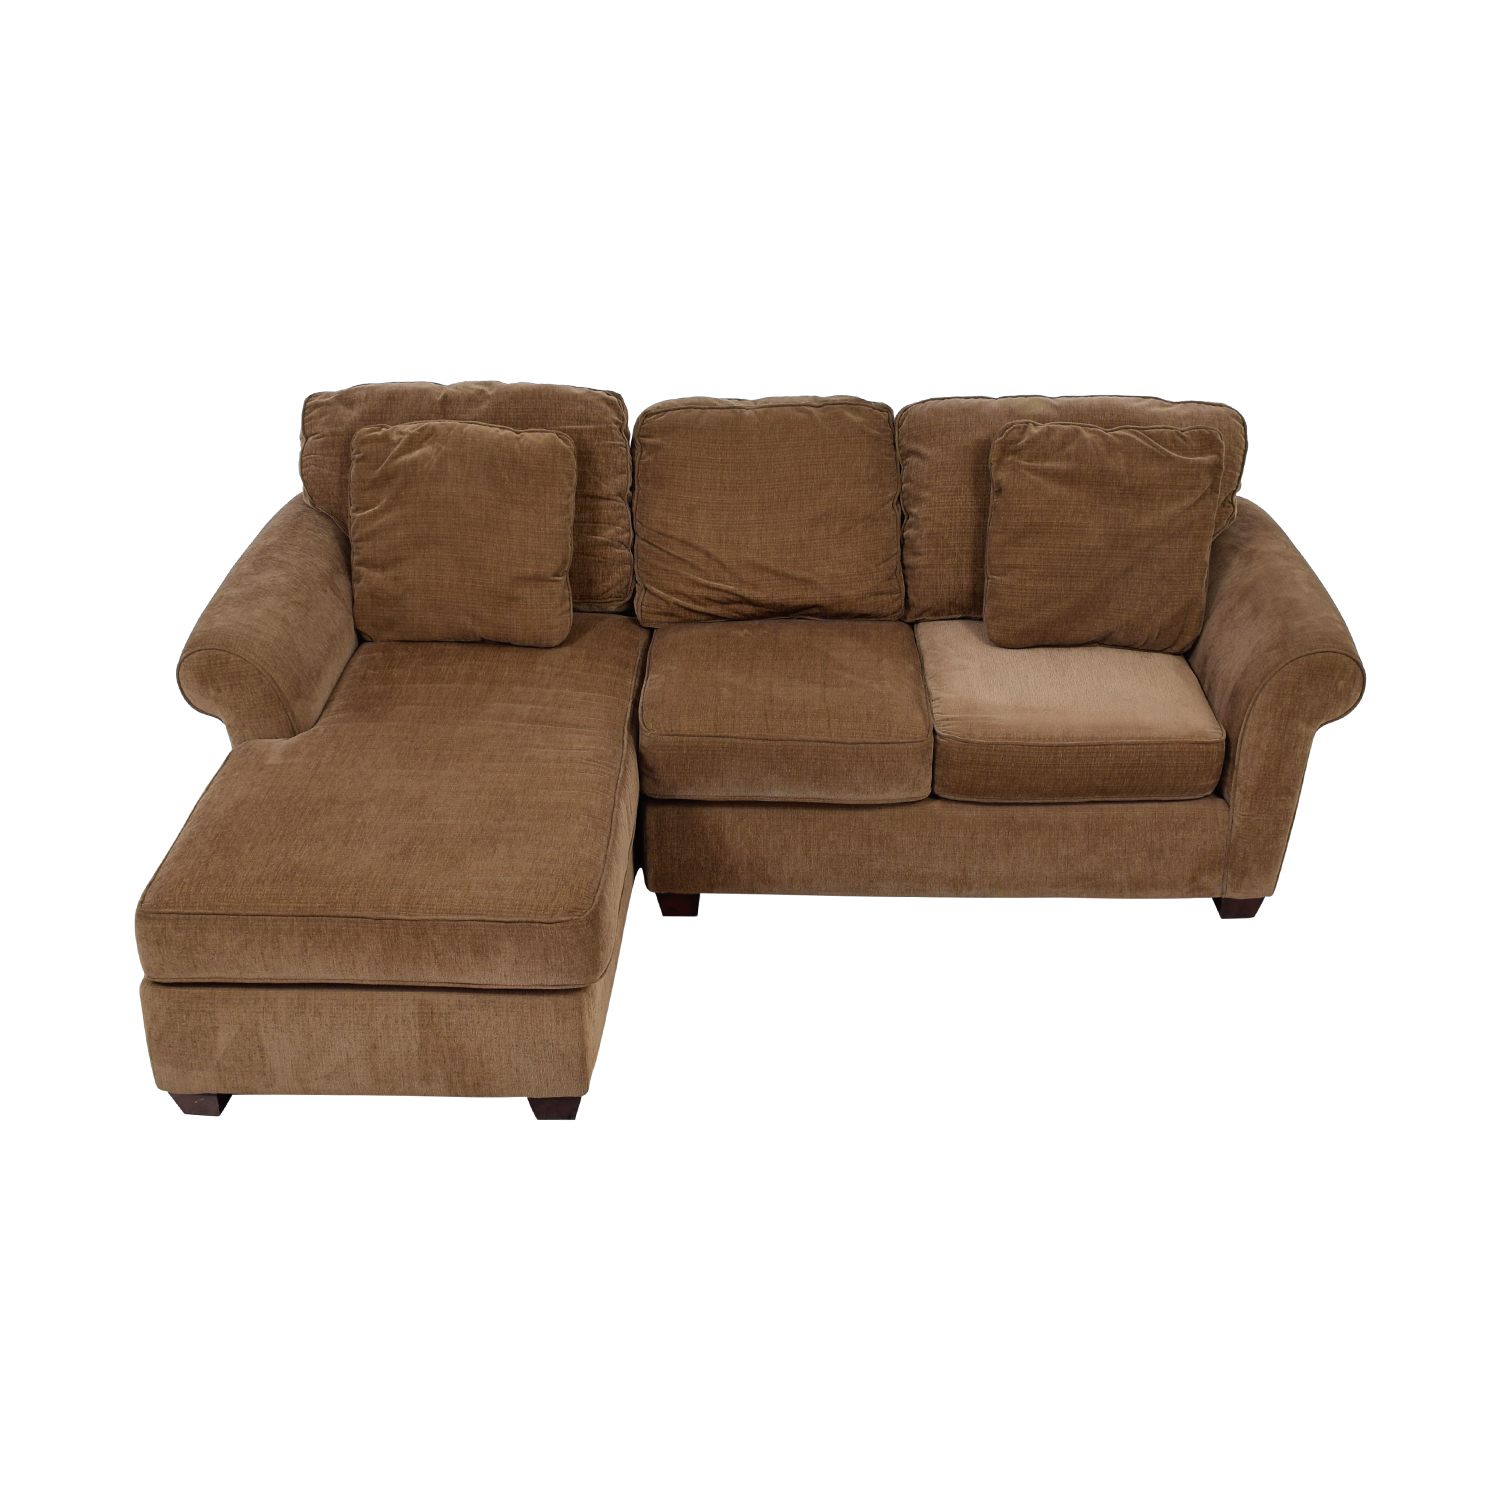 Raymour & Flanigan Raymour & Flanigan Brown Multi Colored Tweed Chaise Sectional Greenish brown